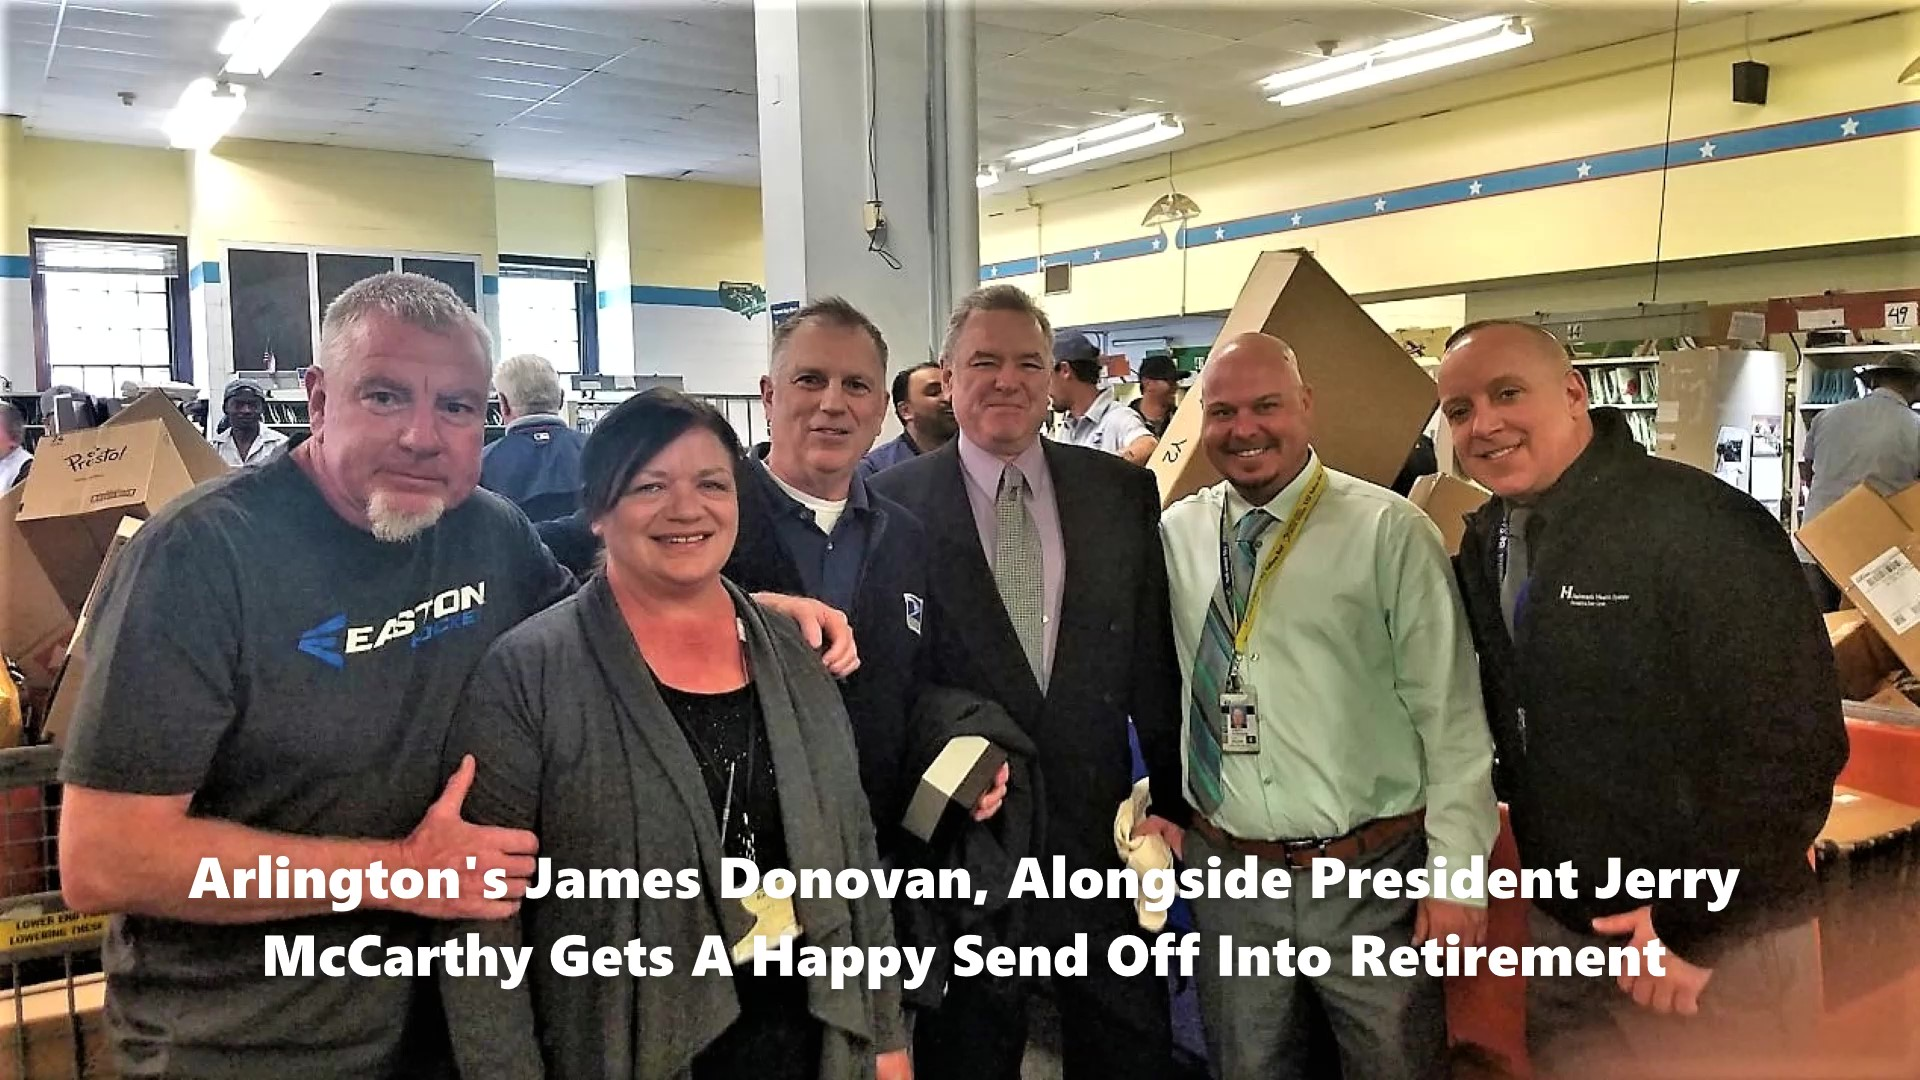 62019James-Donovan-retirement-Arlington-1_Large_Moment2